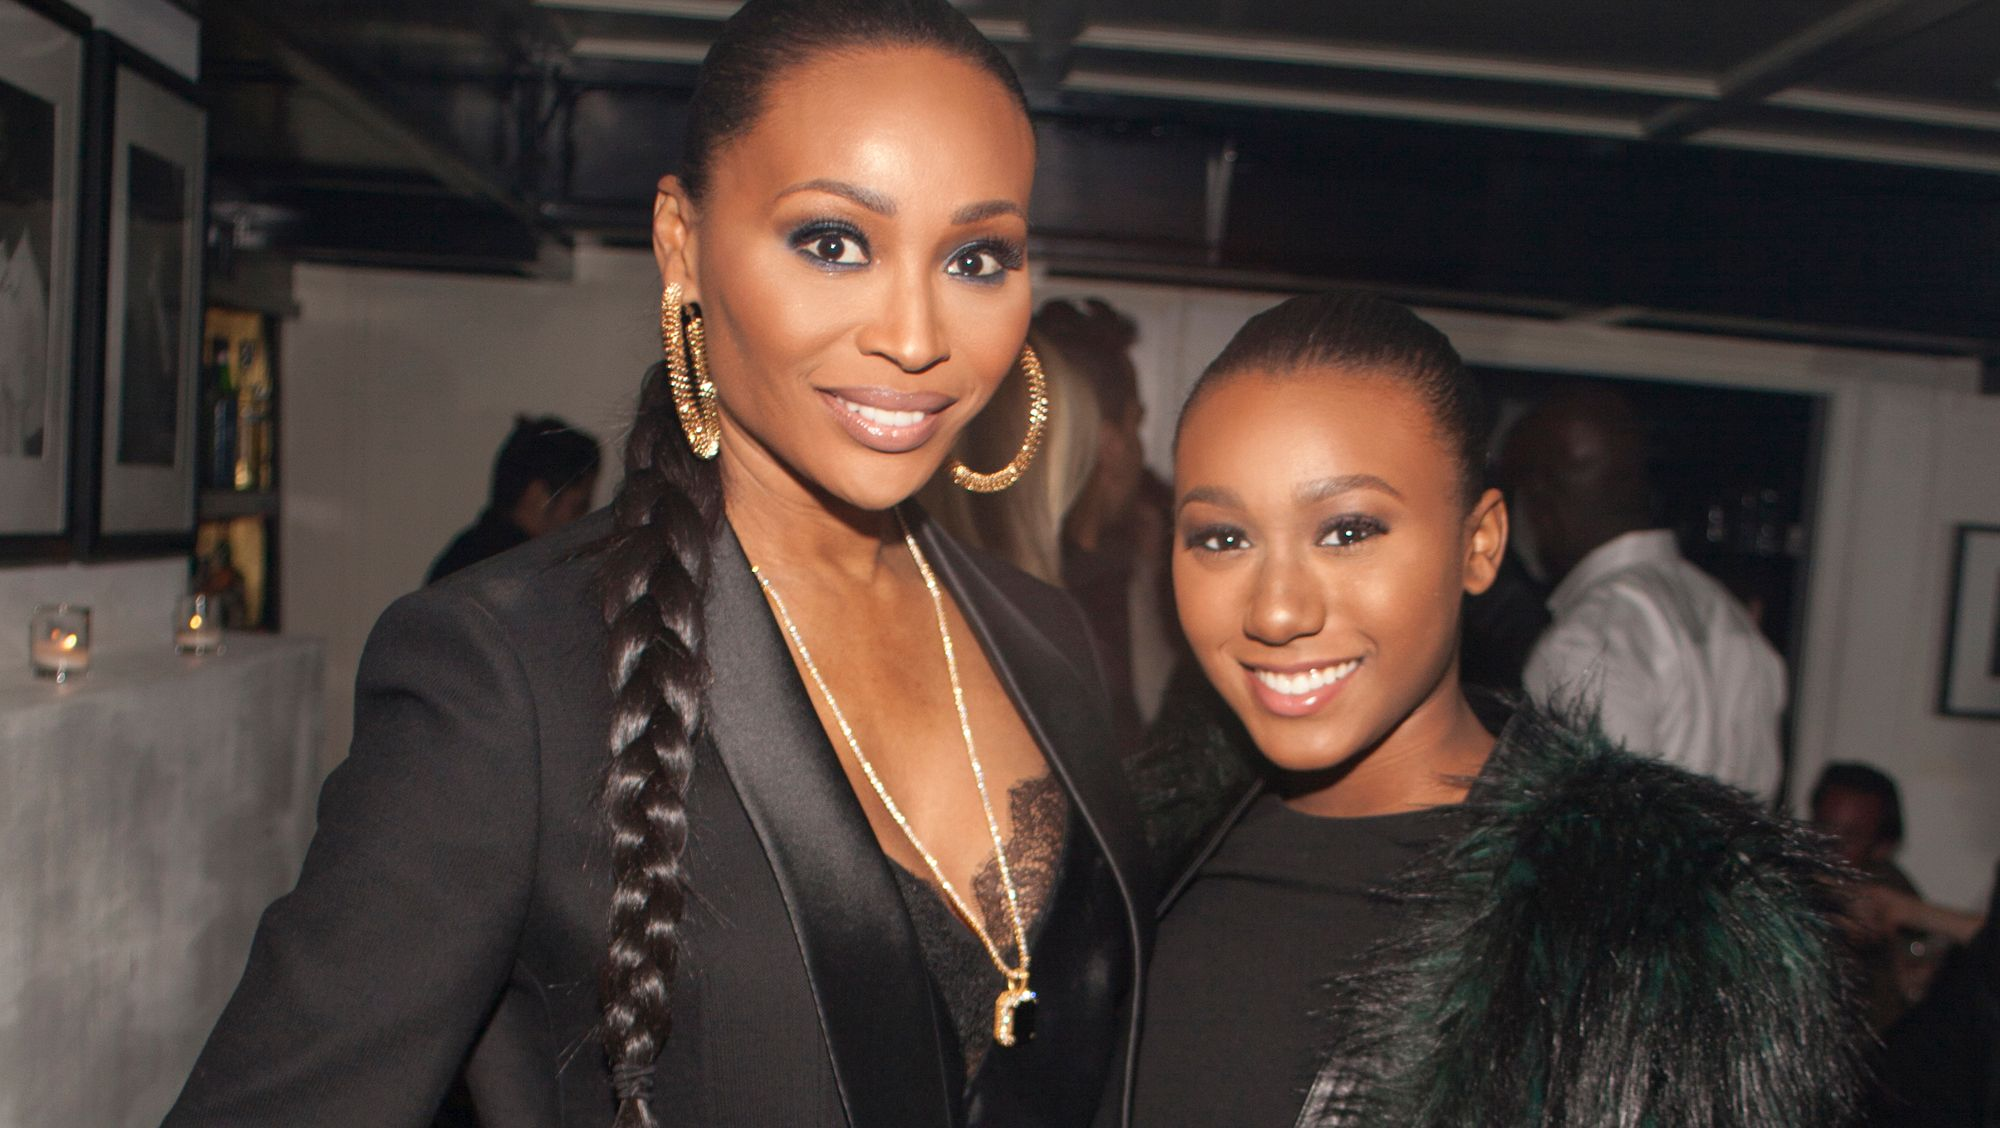 Cynthia Bailey's Paradisiac Video Has Fans Dreaming – Check Out Her Recent Post